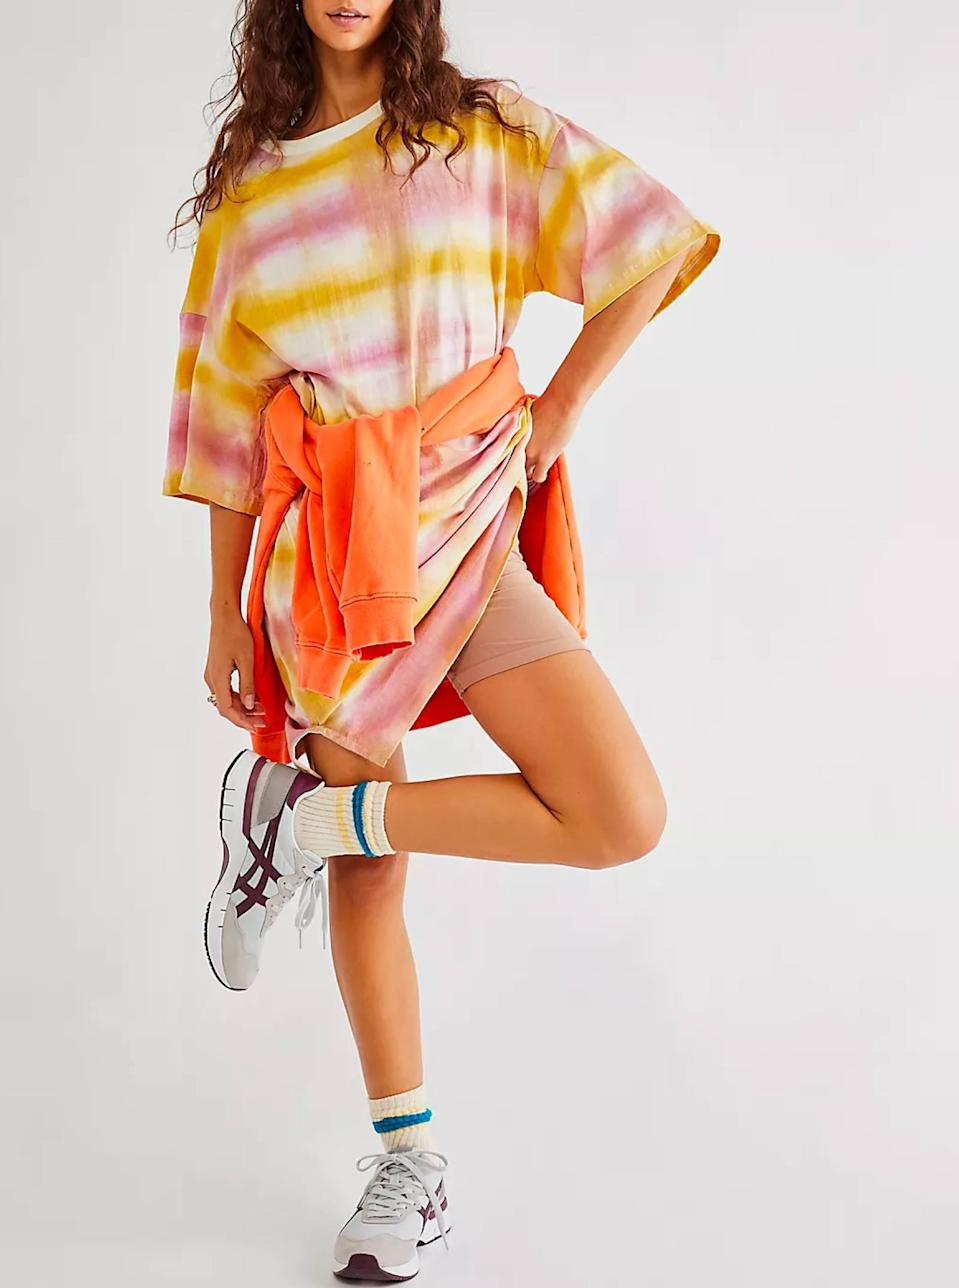 """Lazing around? Perusing the farmers market? Going to an outdoor concert? This tie-dye T-shirt dress is the move. $273, Free People. <a href=""""https://www.freepeople.com/shop/lavanda-dress/?"""" rel=""""nofollow noopener"""" target=""""_blank"""" data-ylk=""""slk:Get it now!"""" class=""""link rapid-noclick-resp"""">Get it now!</a>"""